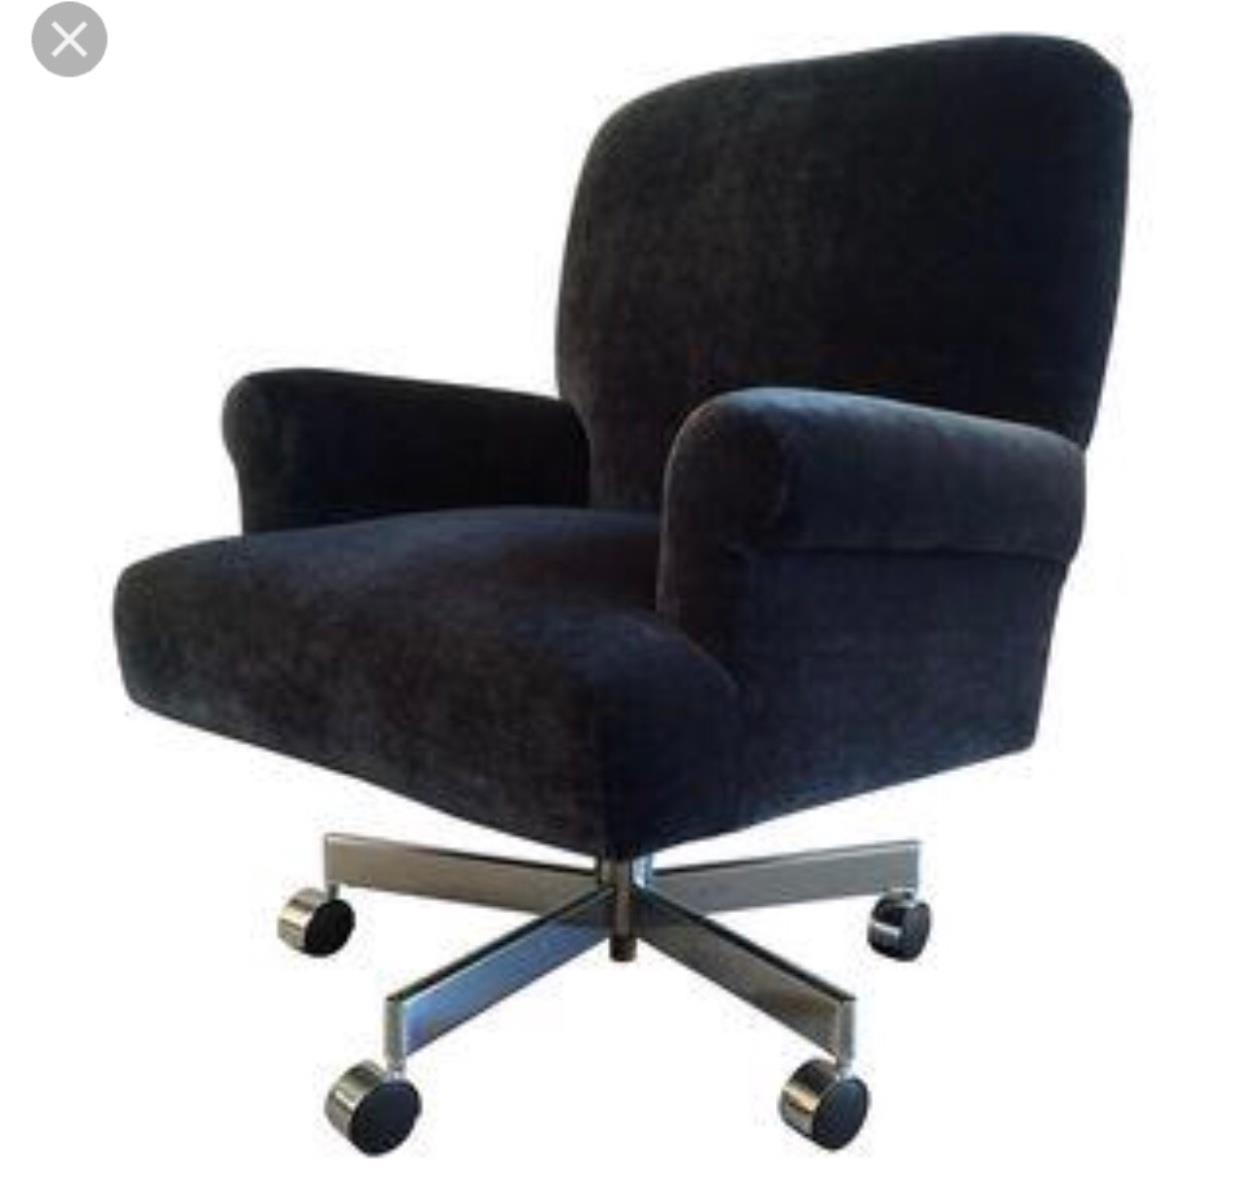 Furniture Shipping Rates & Services | Uship With Regard To Office Sofa Chairs (View 8 of 20)